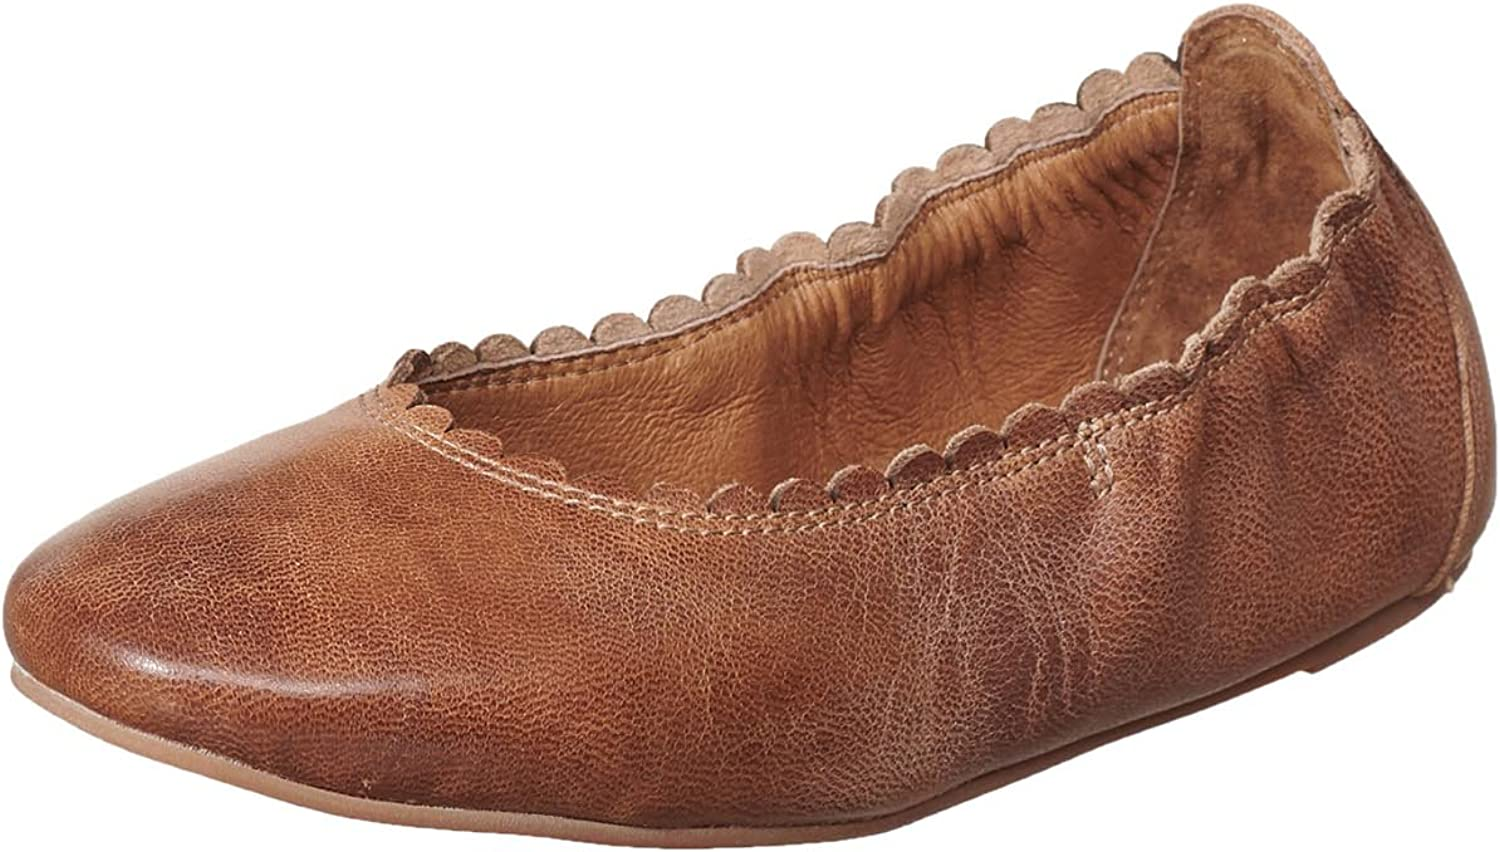 Antelope Women's 108 Leather Scalloped Ballet shoes